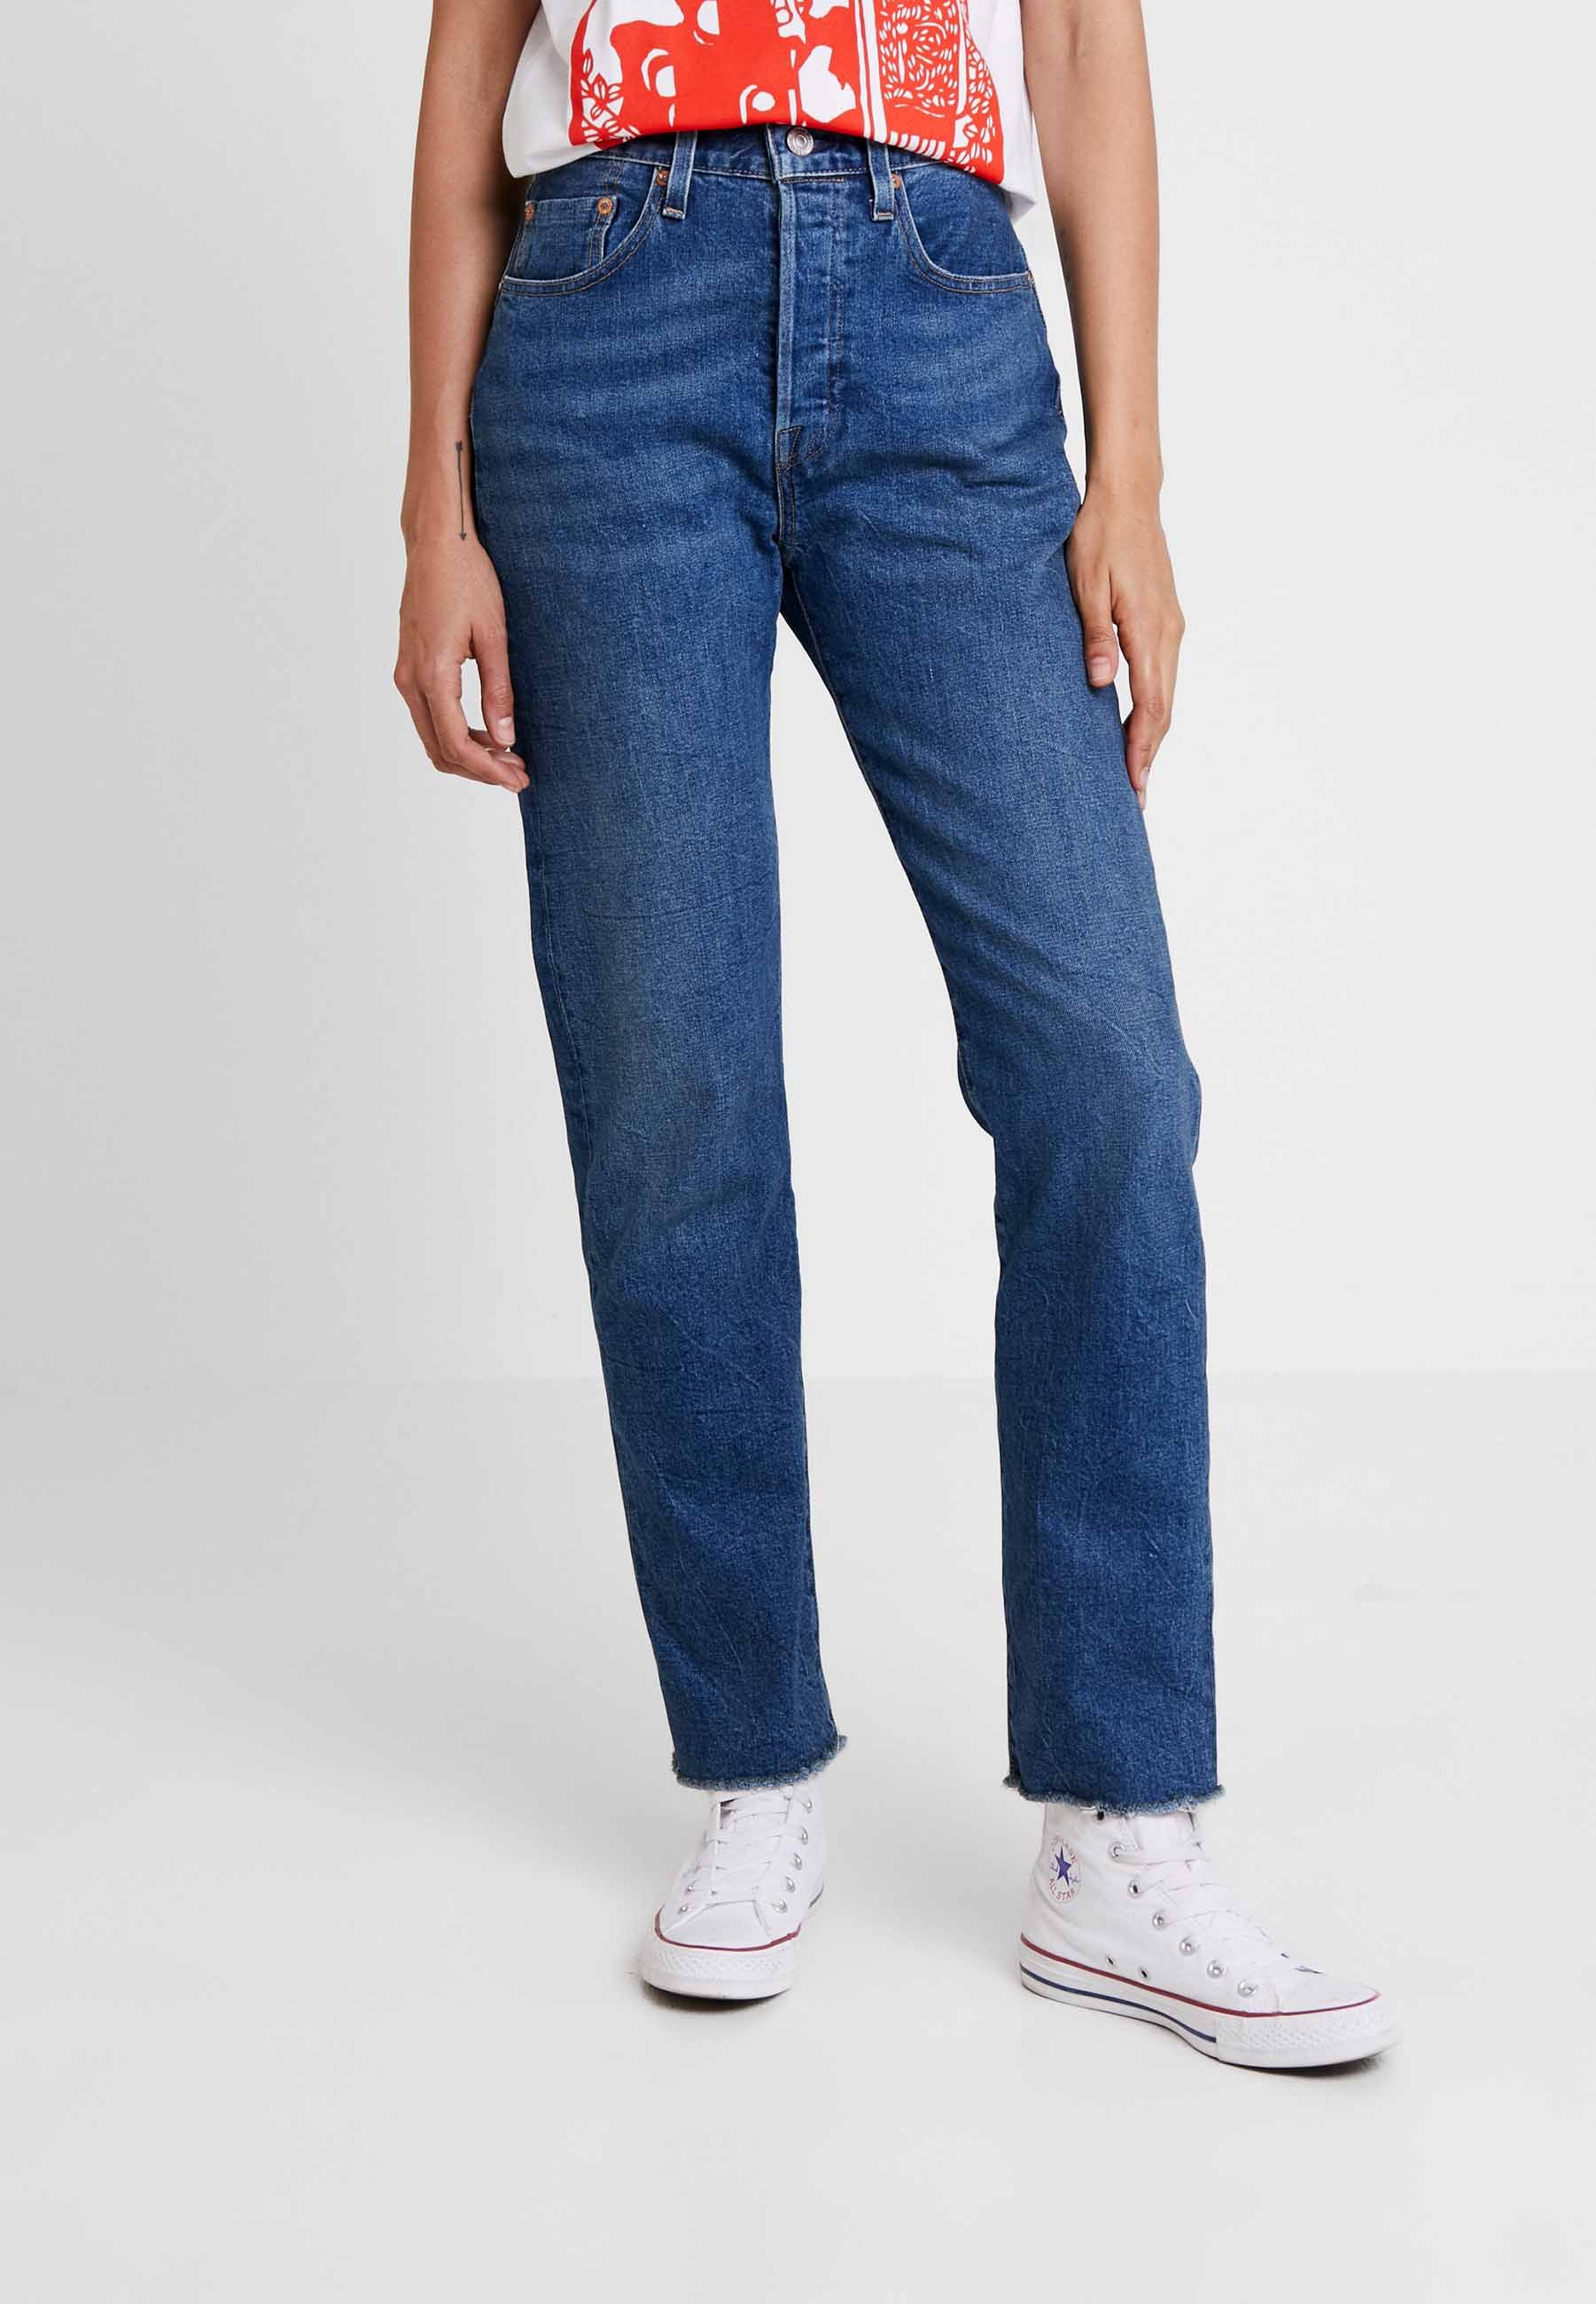 Levi's® Blue Boots Slim Crafted 501Jean Madeamp; EWxodCeQrB